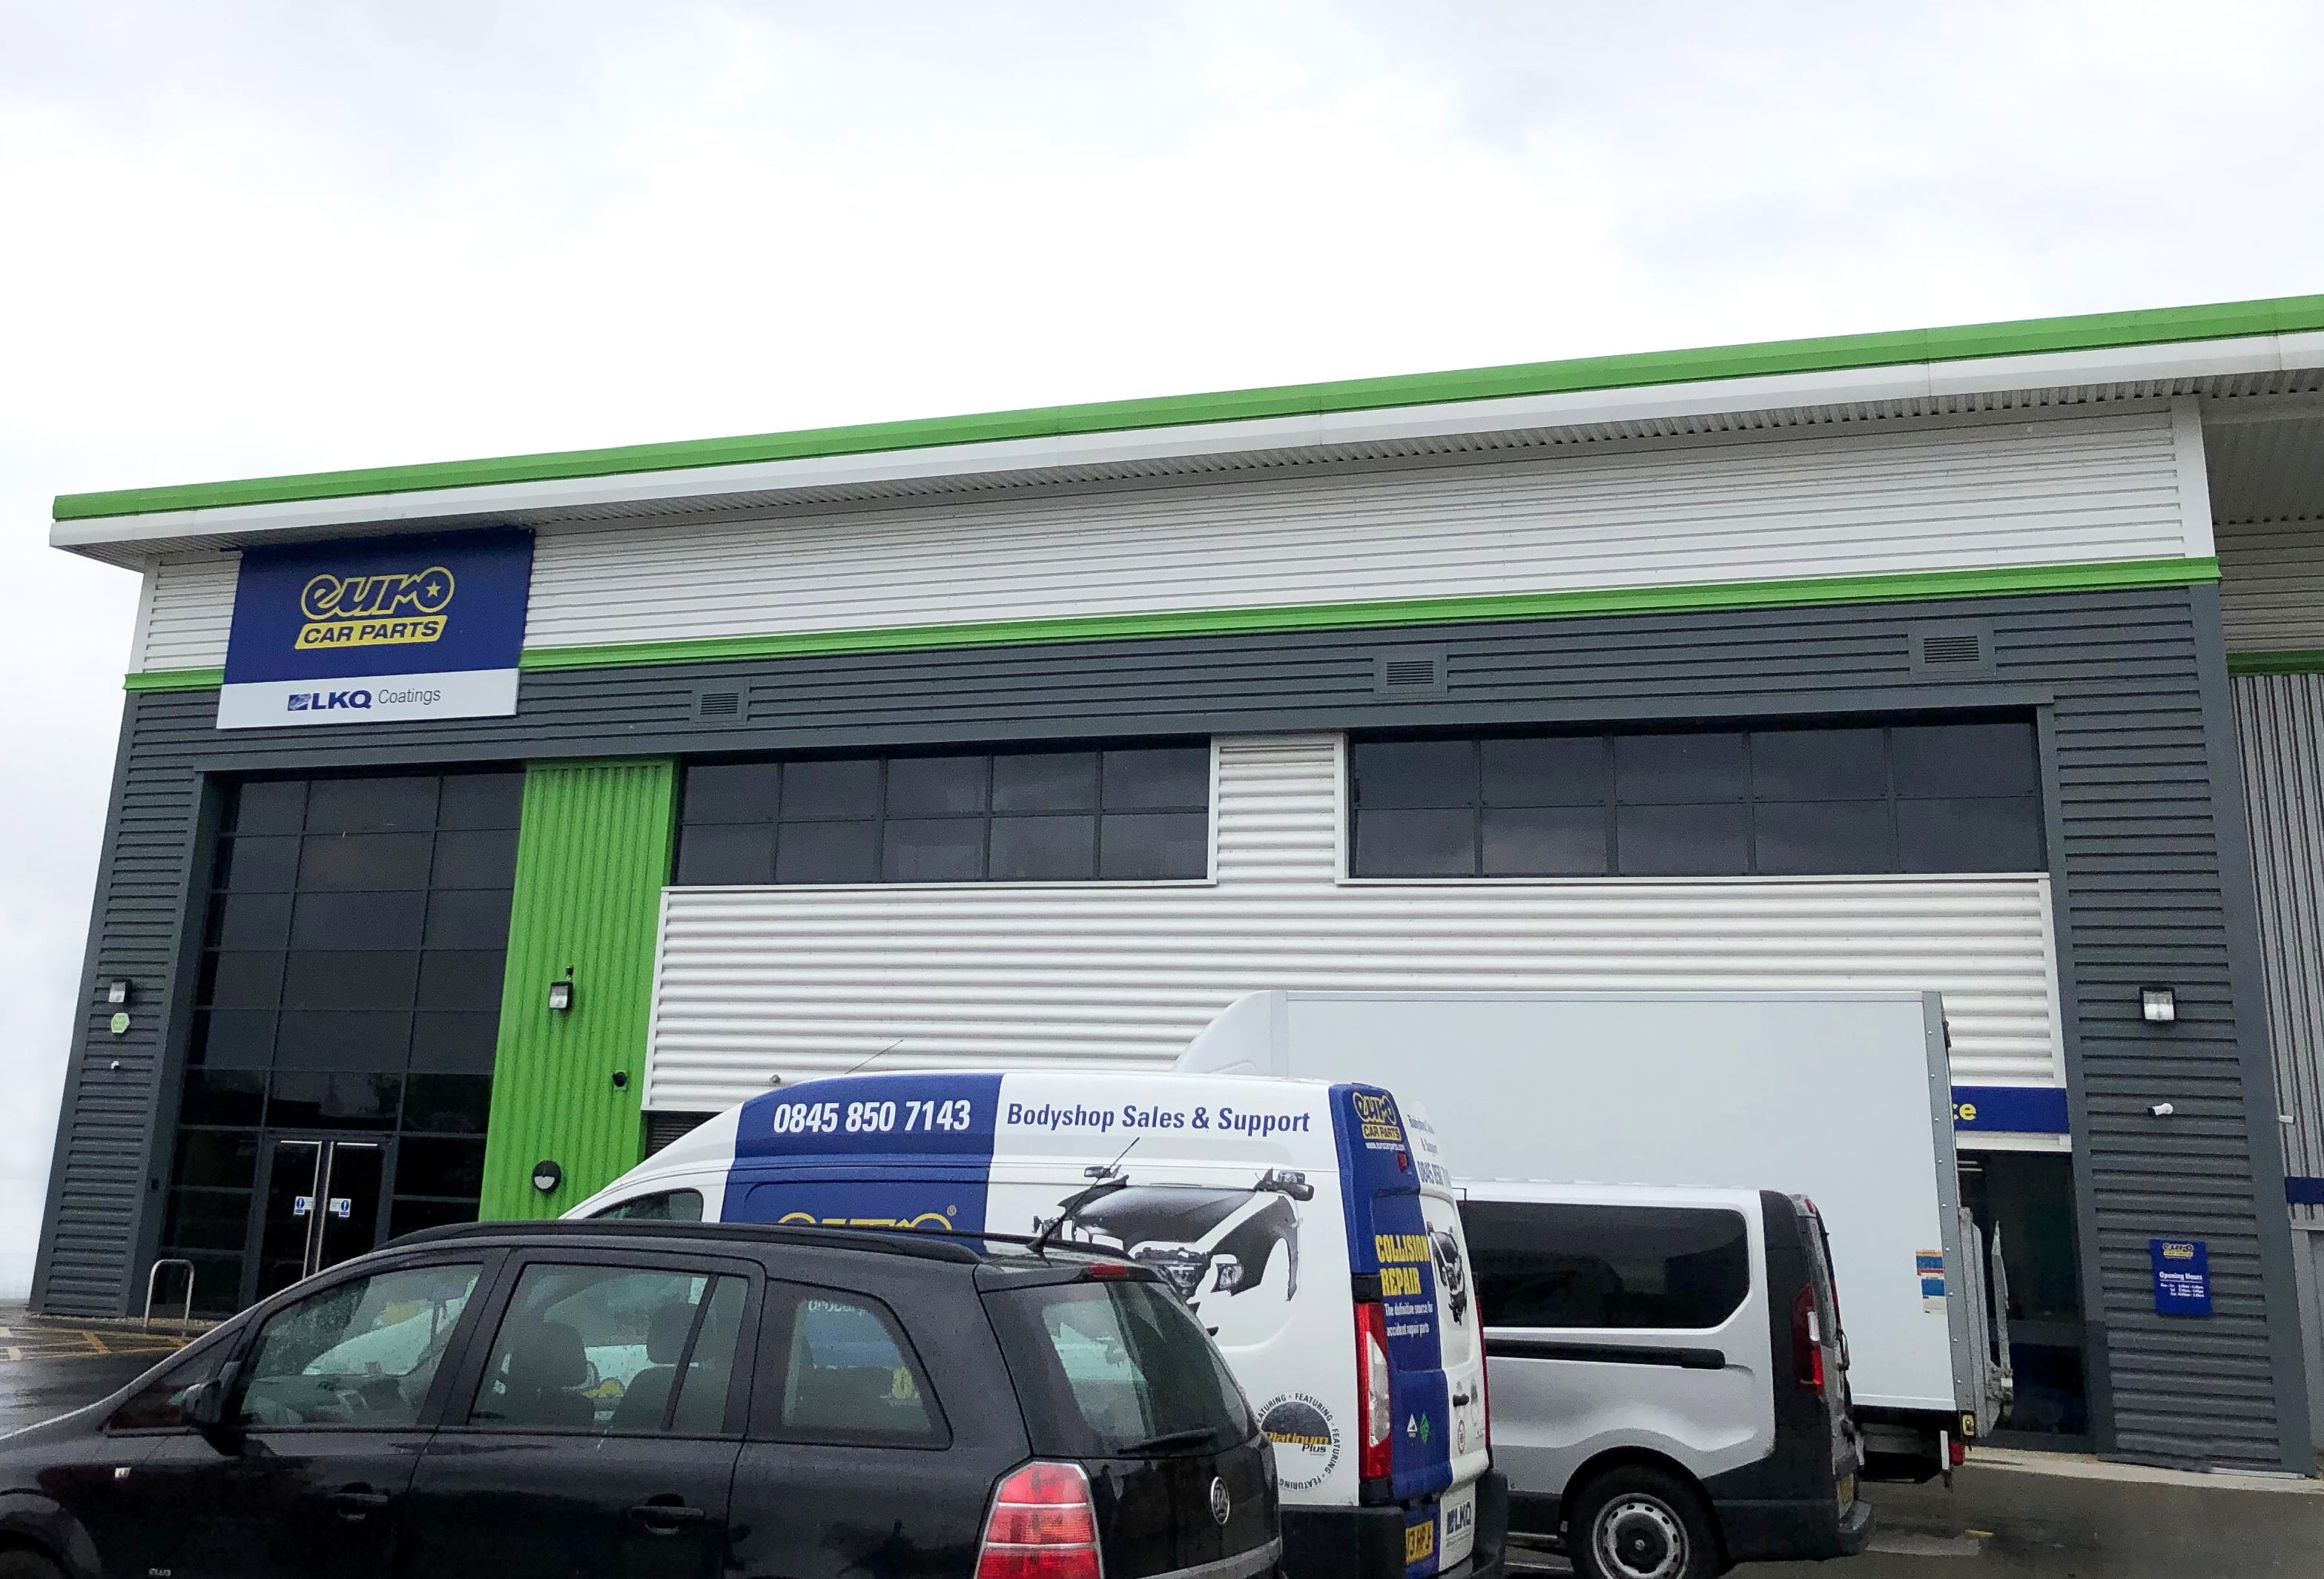 Management Walkout As Euro Car Parts Looks To Axe Jobs Auto Repair